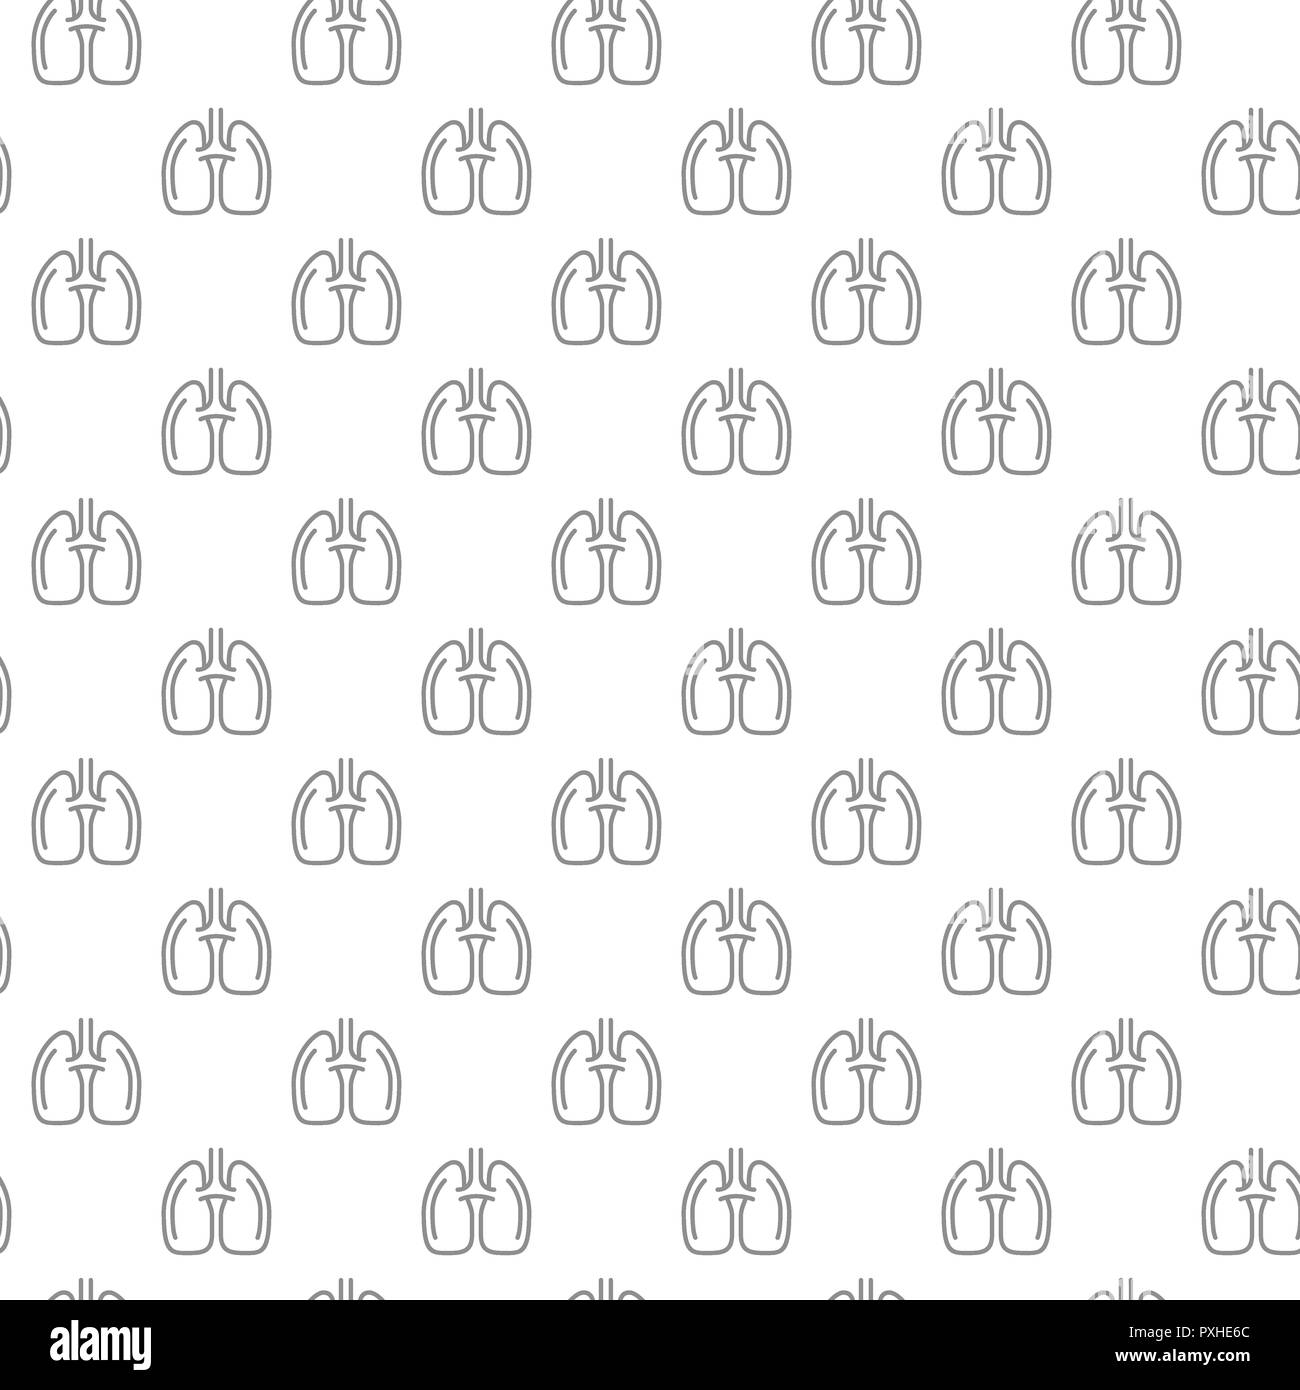 Unique lungs seamless pattern with various icons and symbols on white background flat illustration - Stock Image